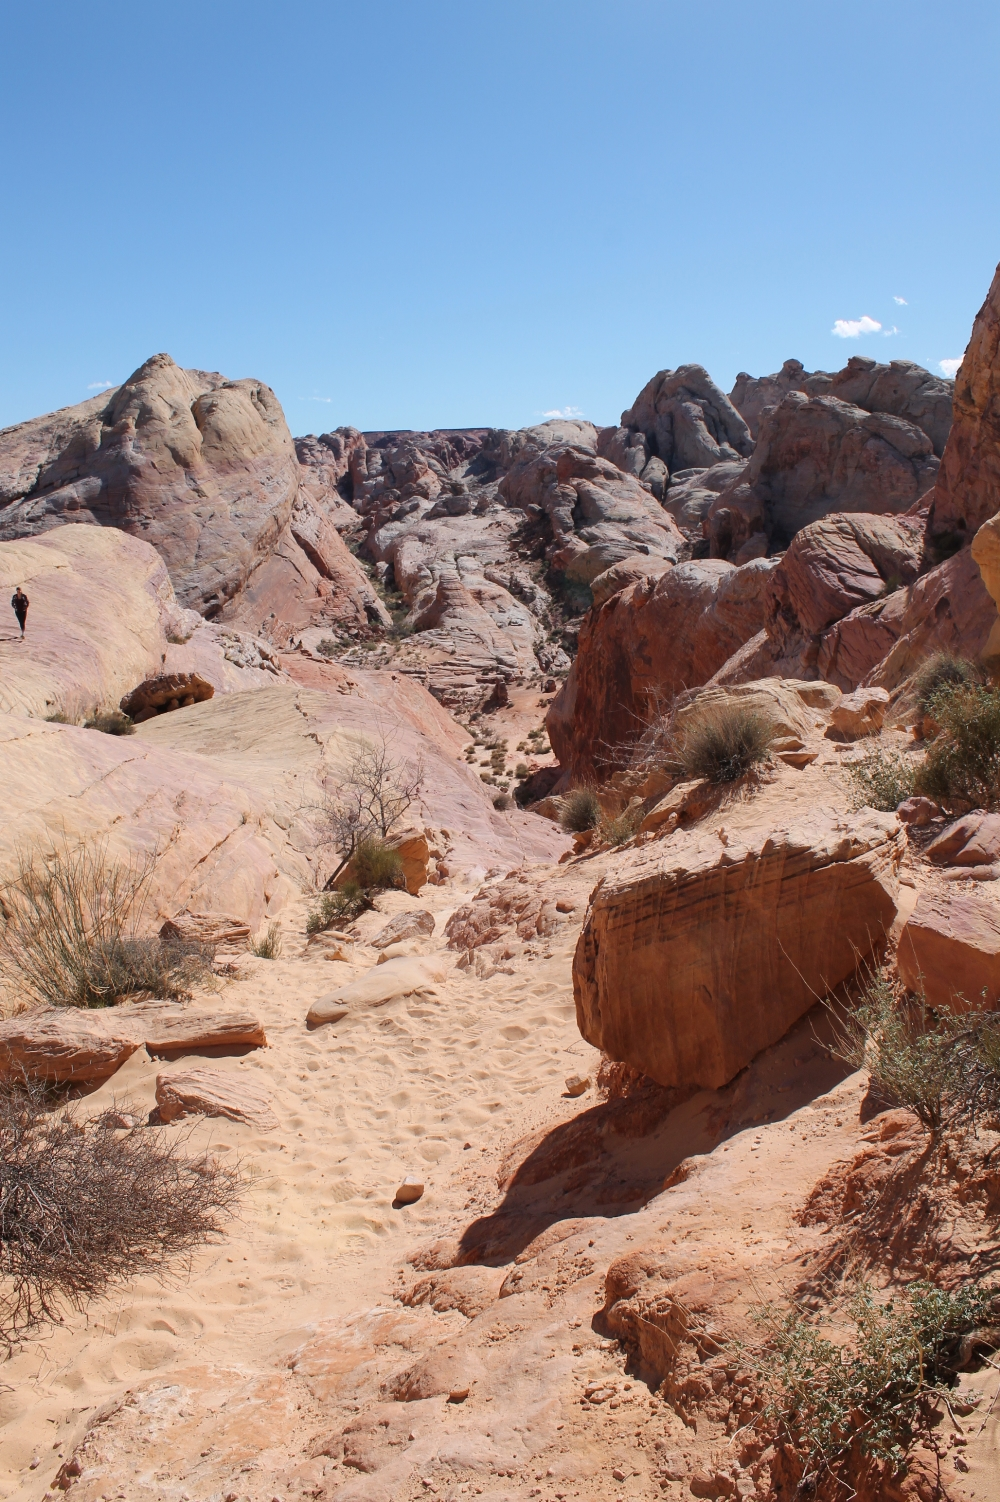 Valley of fire - White domes